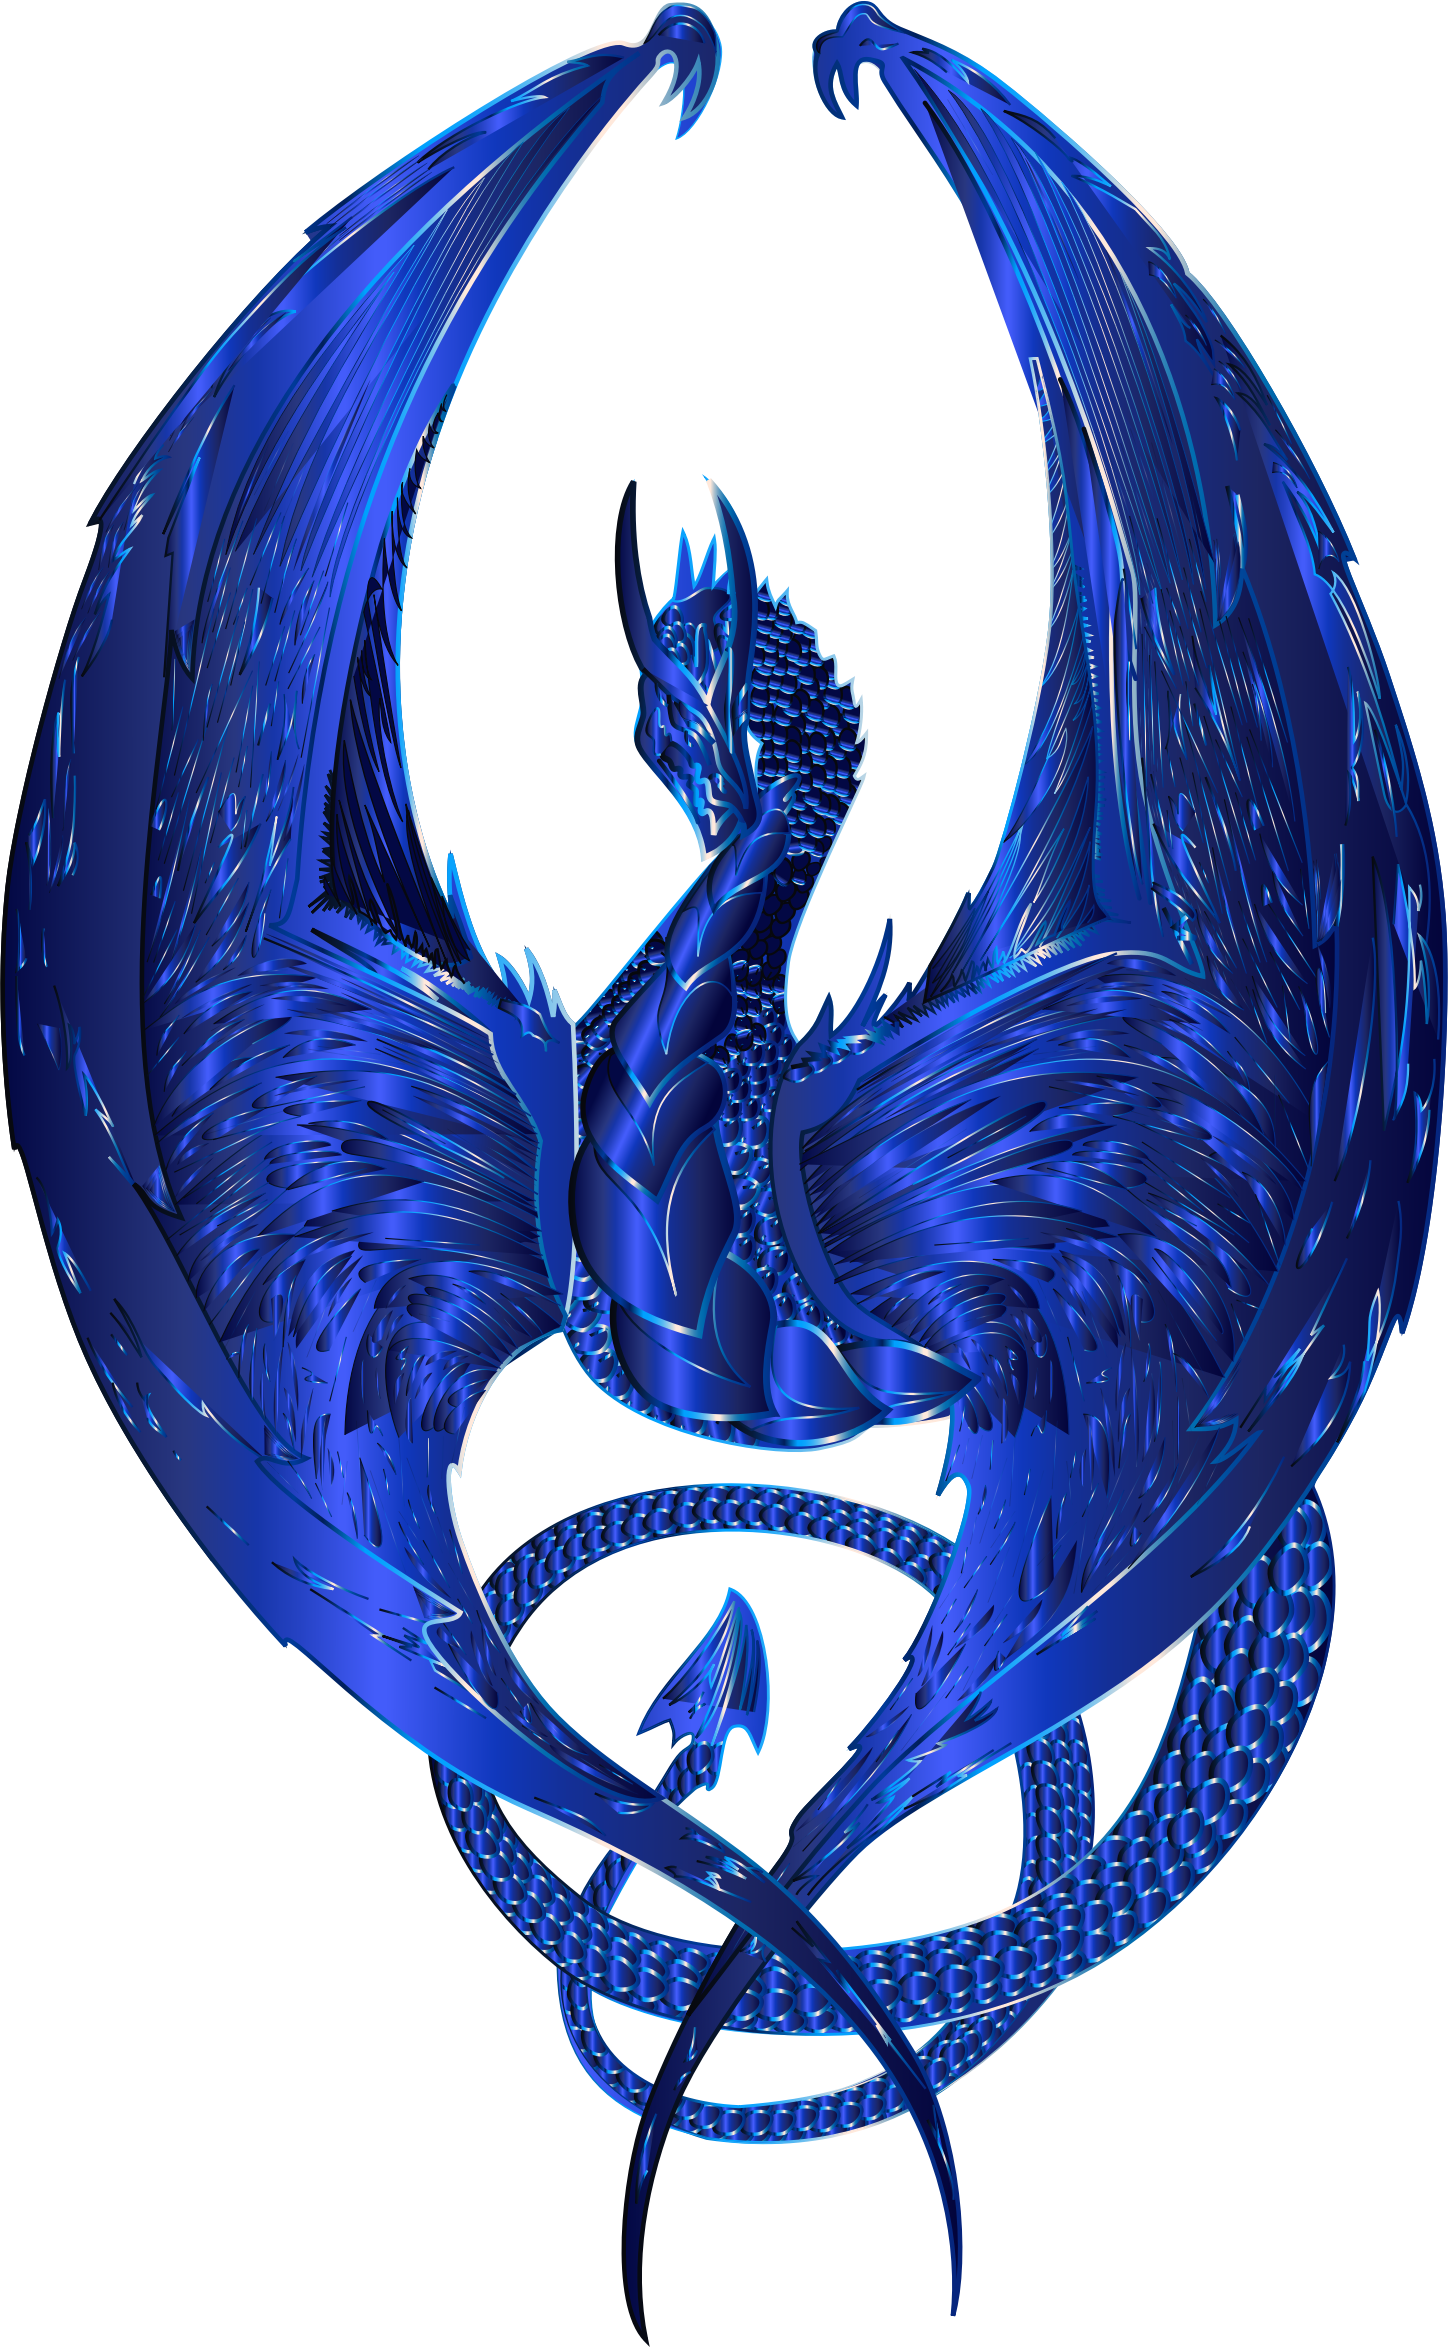 Cobalt Wyvern by GDJ